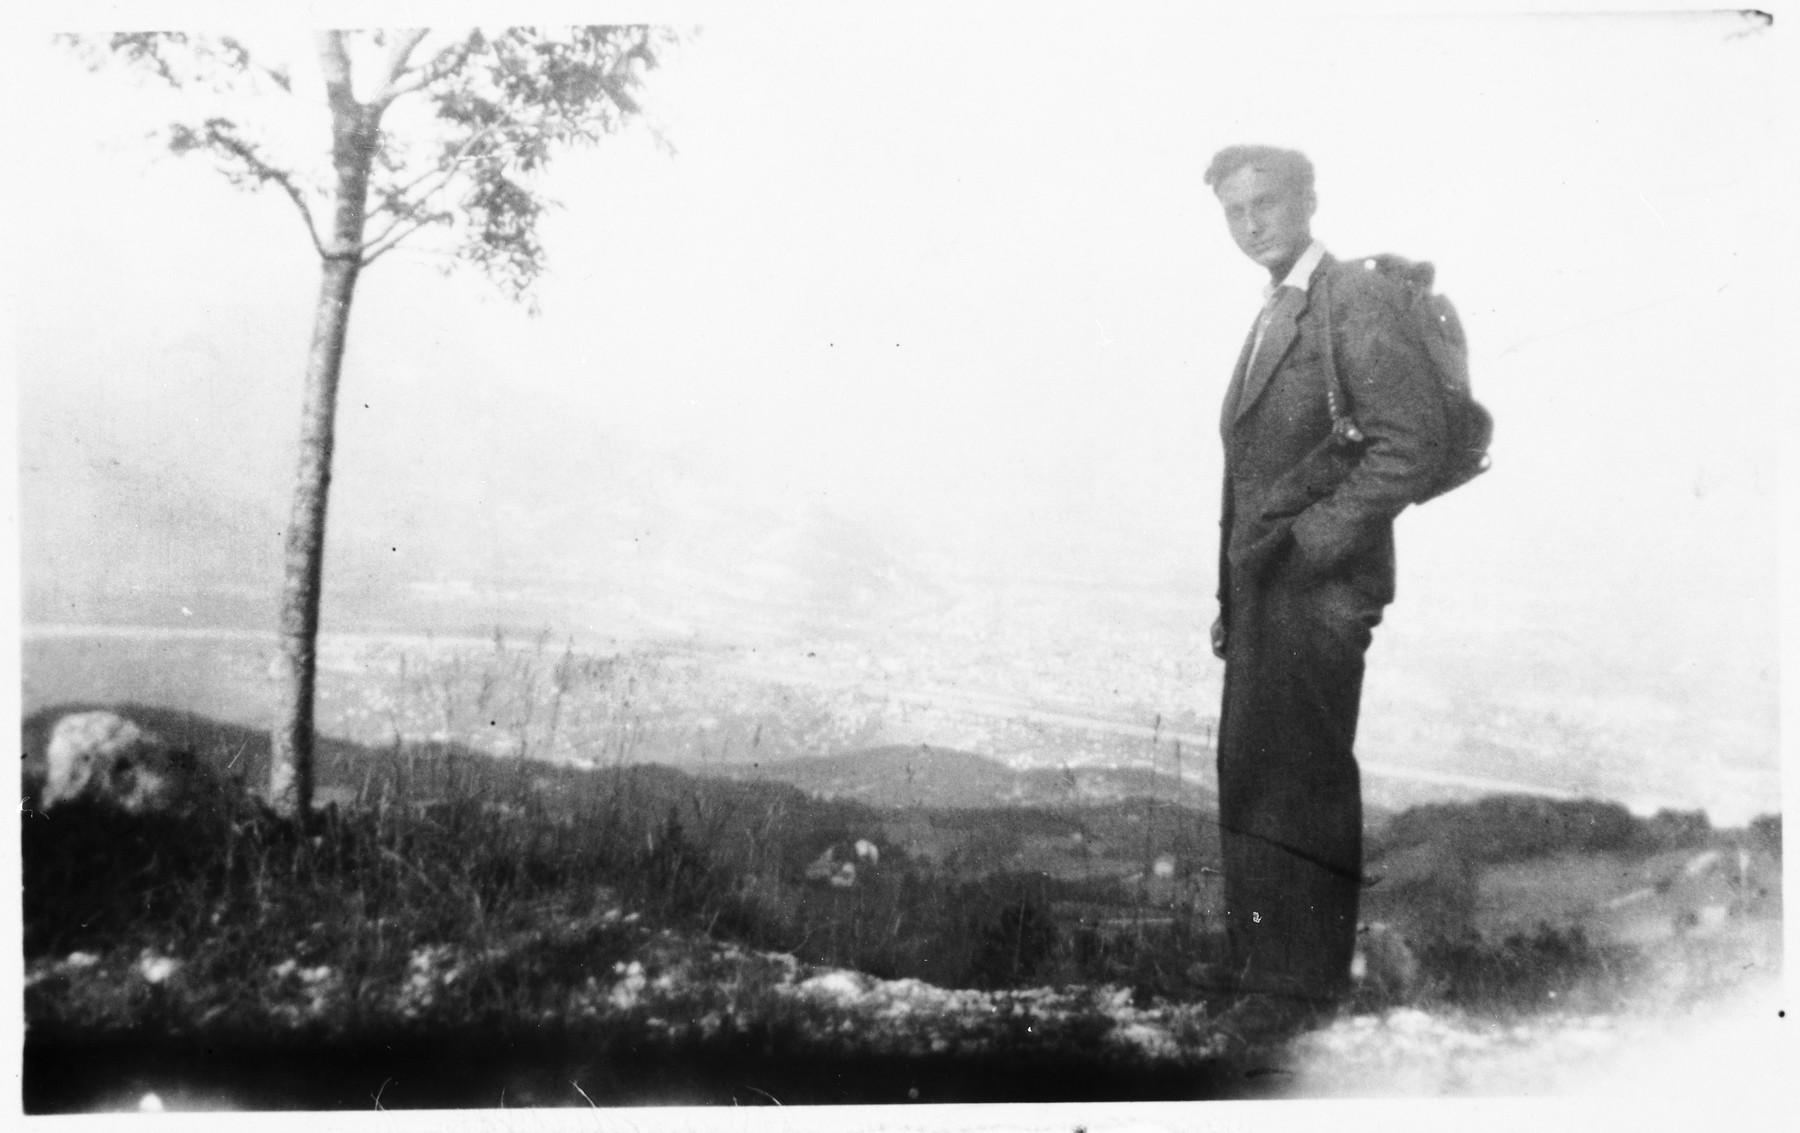 A member of the French Jewish resistance group Armée Juive, poses outside wearing a rucksack on the eve of his escape across the border into Spain.  Pictured is Arthur Einhorn.